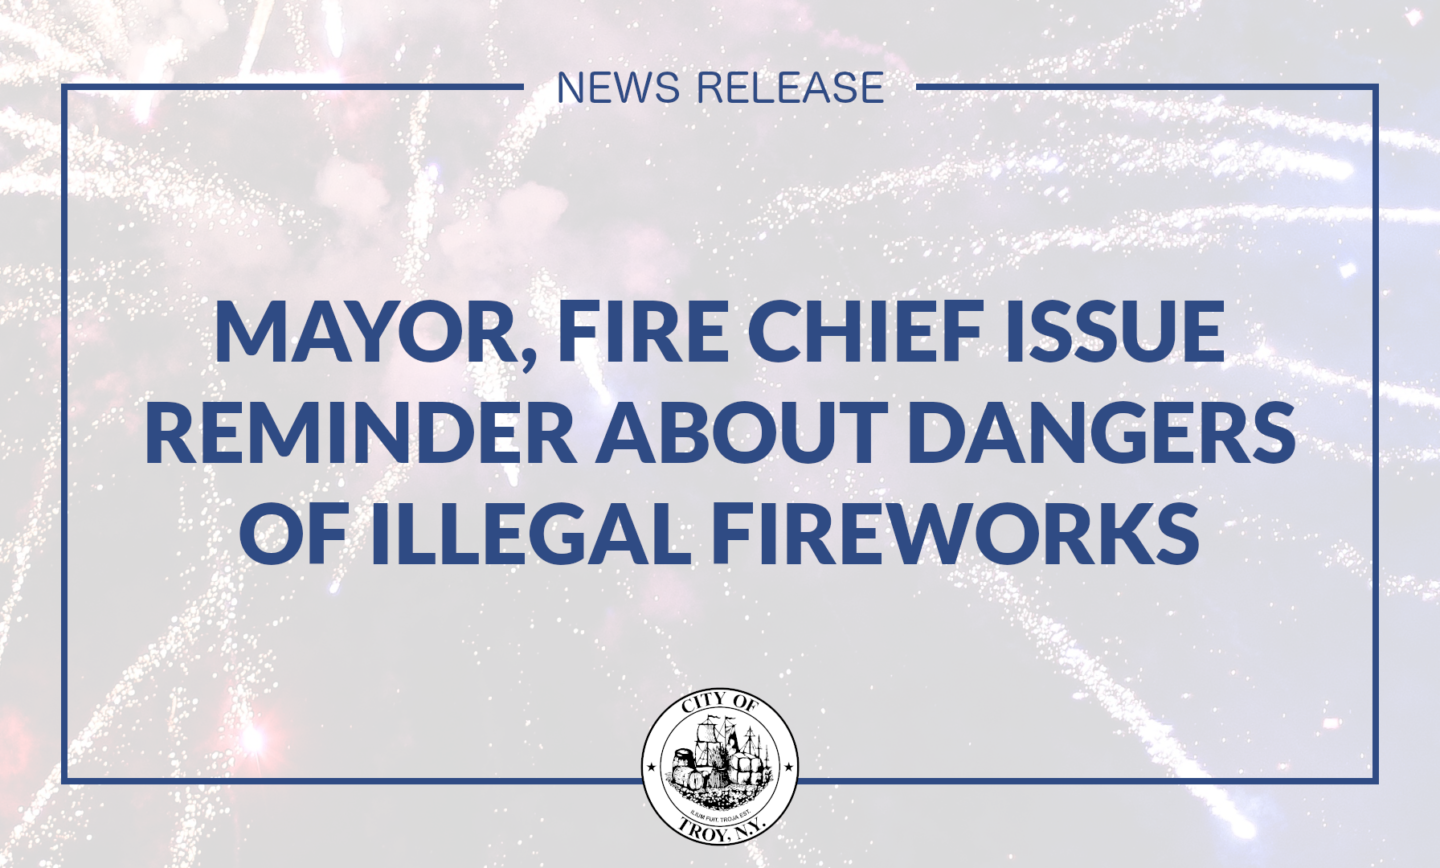 Mayor Madden, Fire Chief McMahon Issue Reminder about Dangers of Illegal Fireworks Use